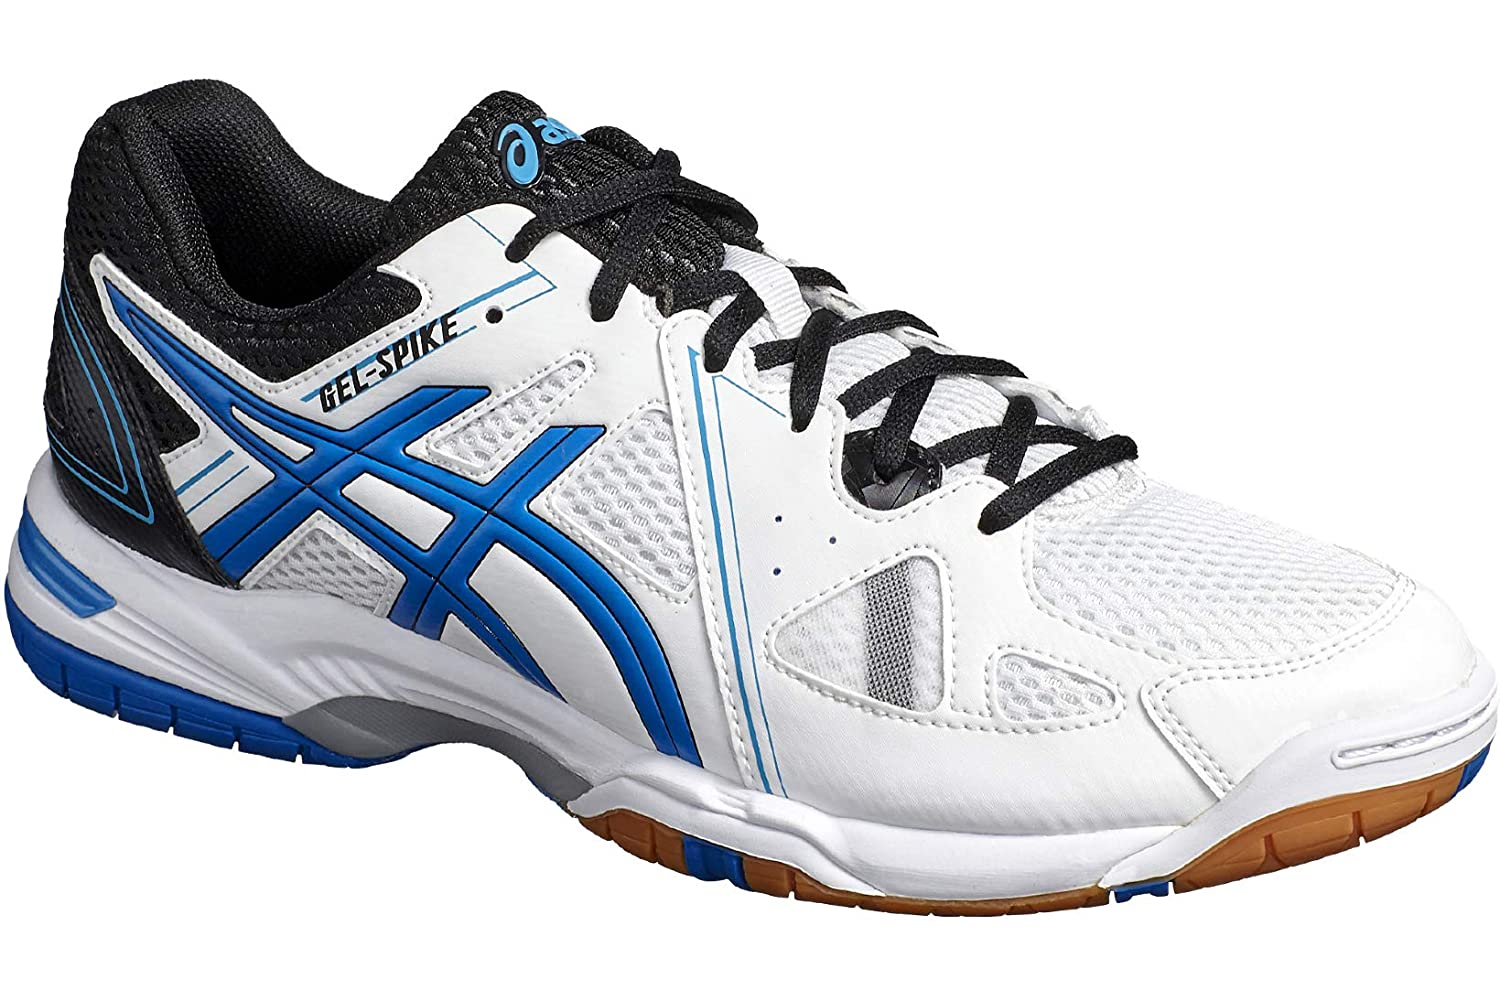 White (White 1051a023-100) ASICS Men's Gel-Spike 3 1051a023-100 Volleyball shoes